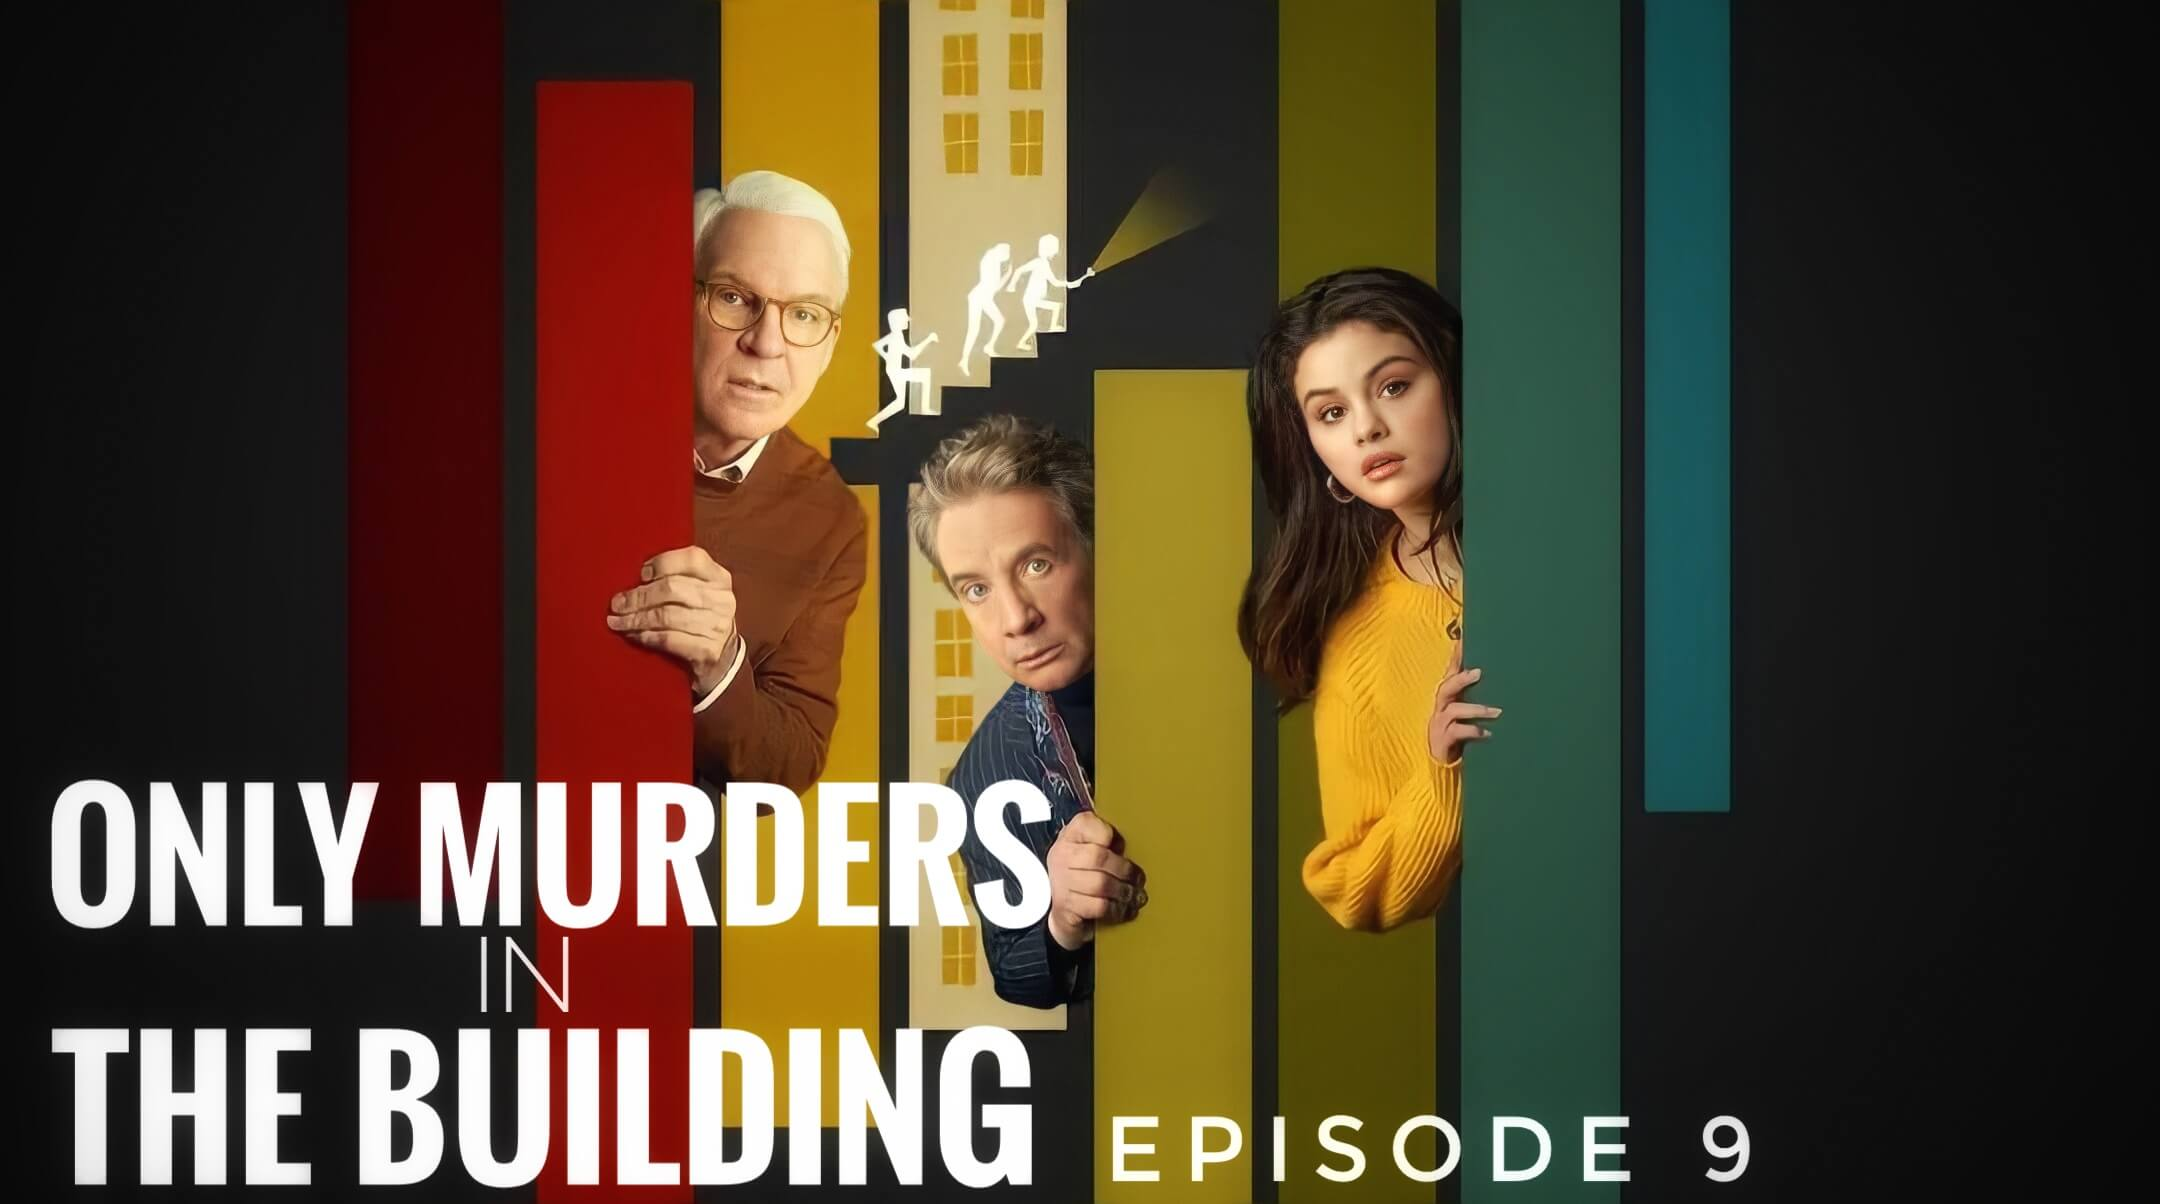 Only murders in the building episode 9 release date